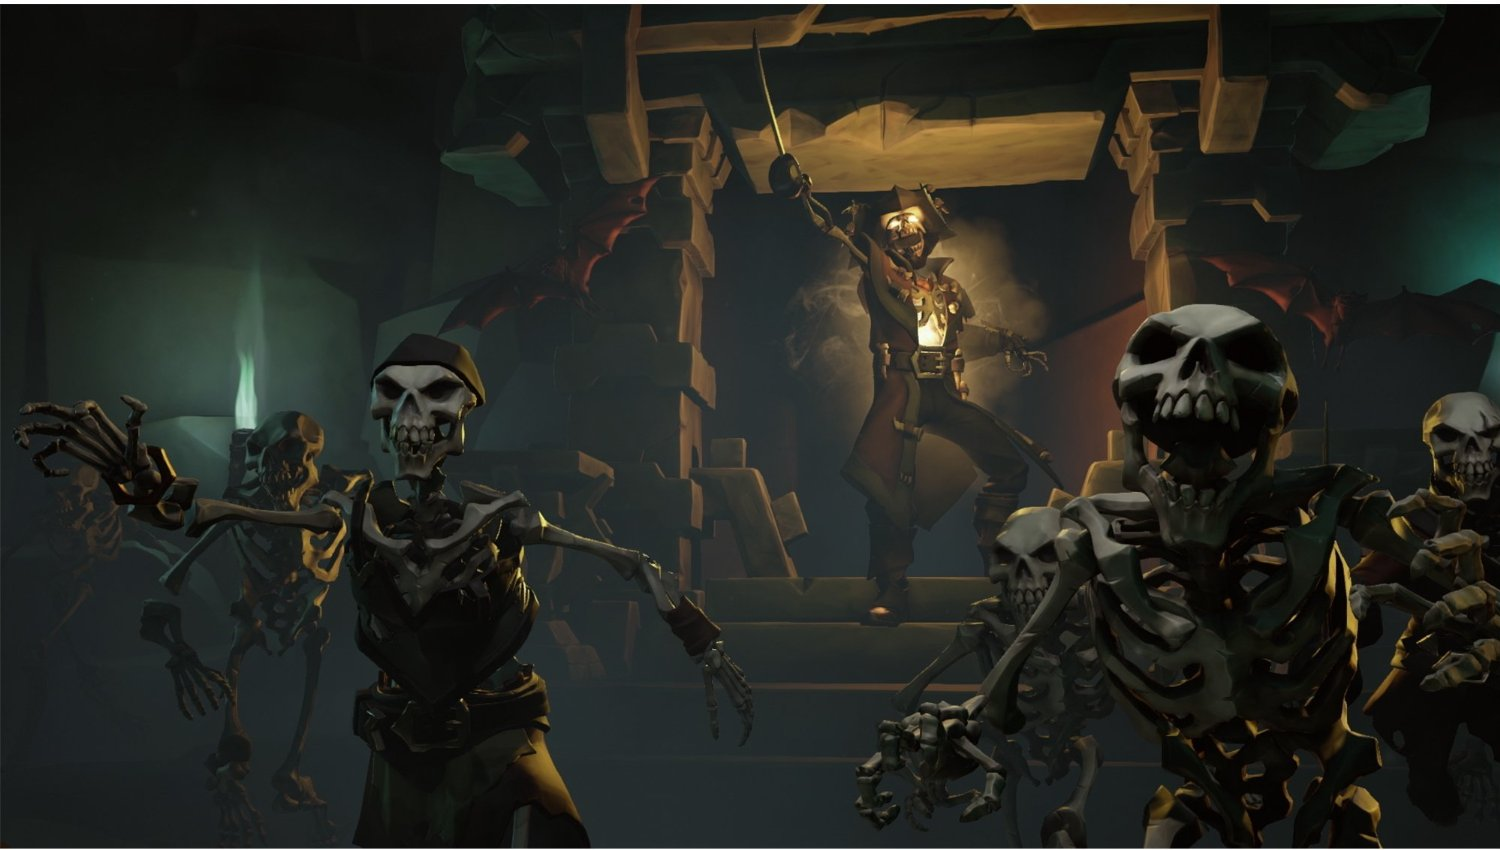 Sea of Thieves - an army of skeletons advances